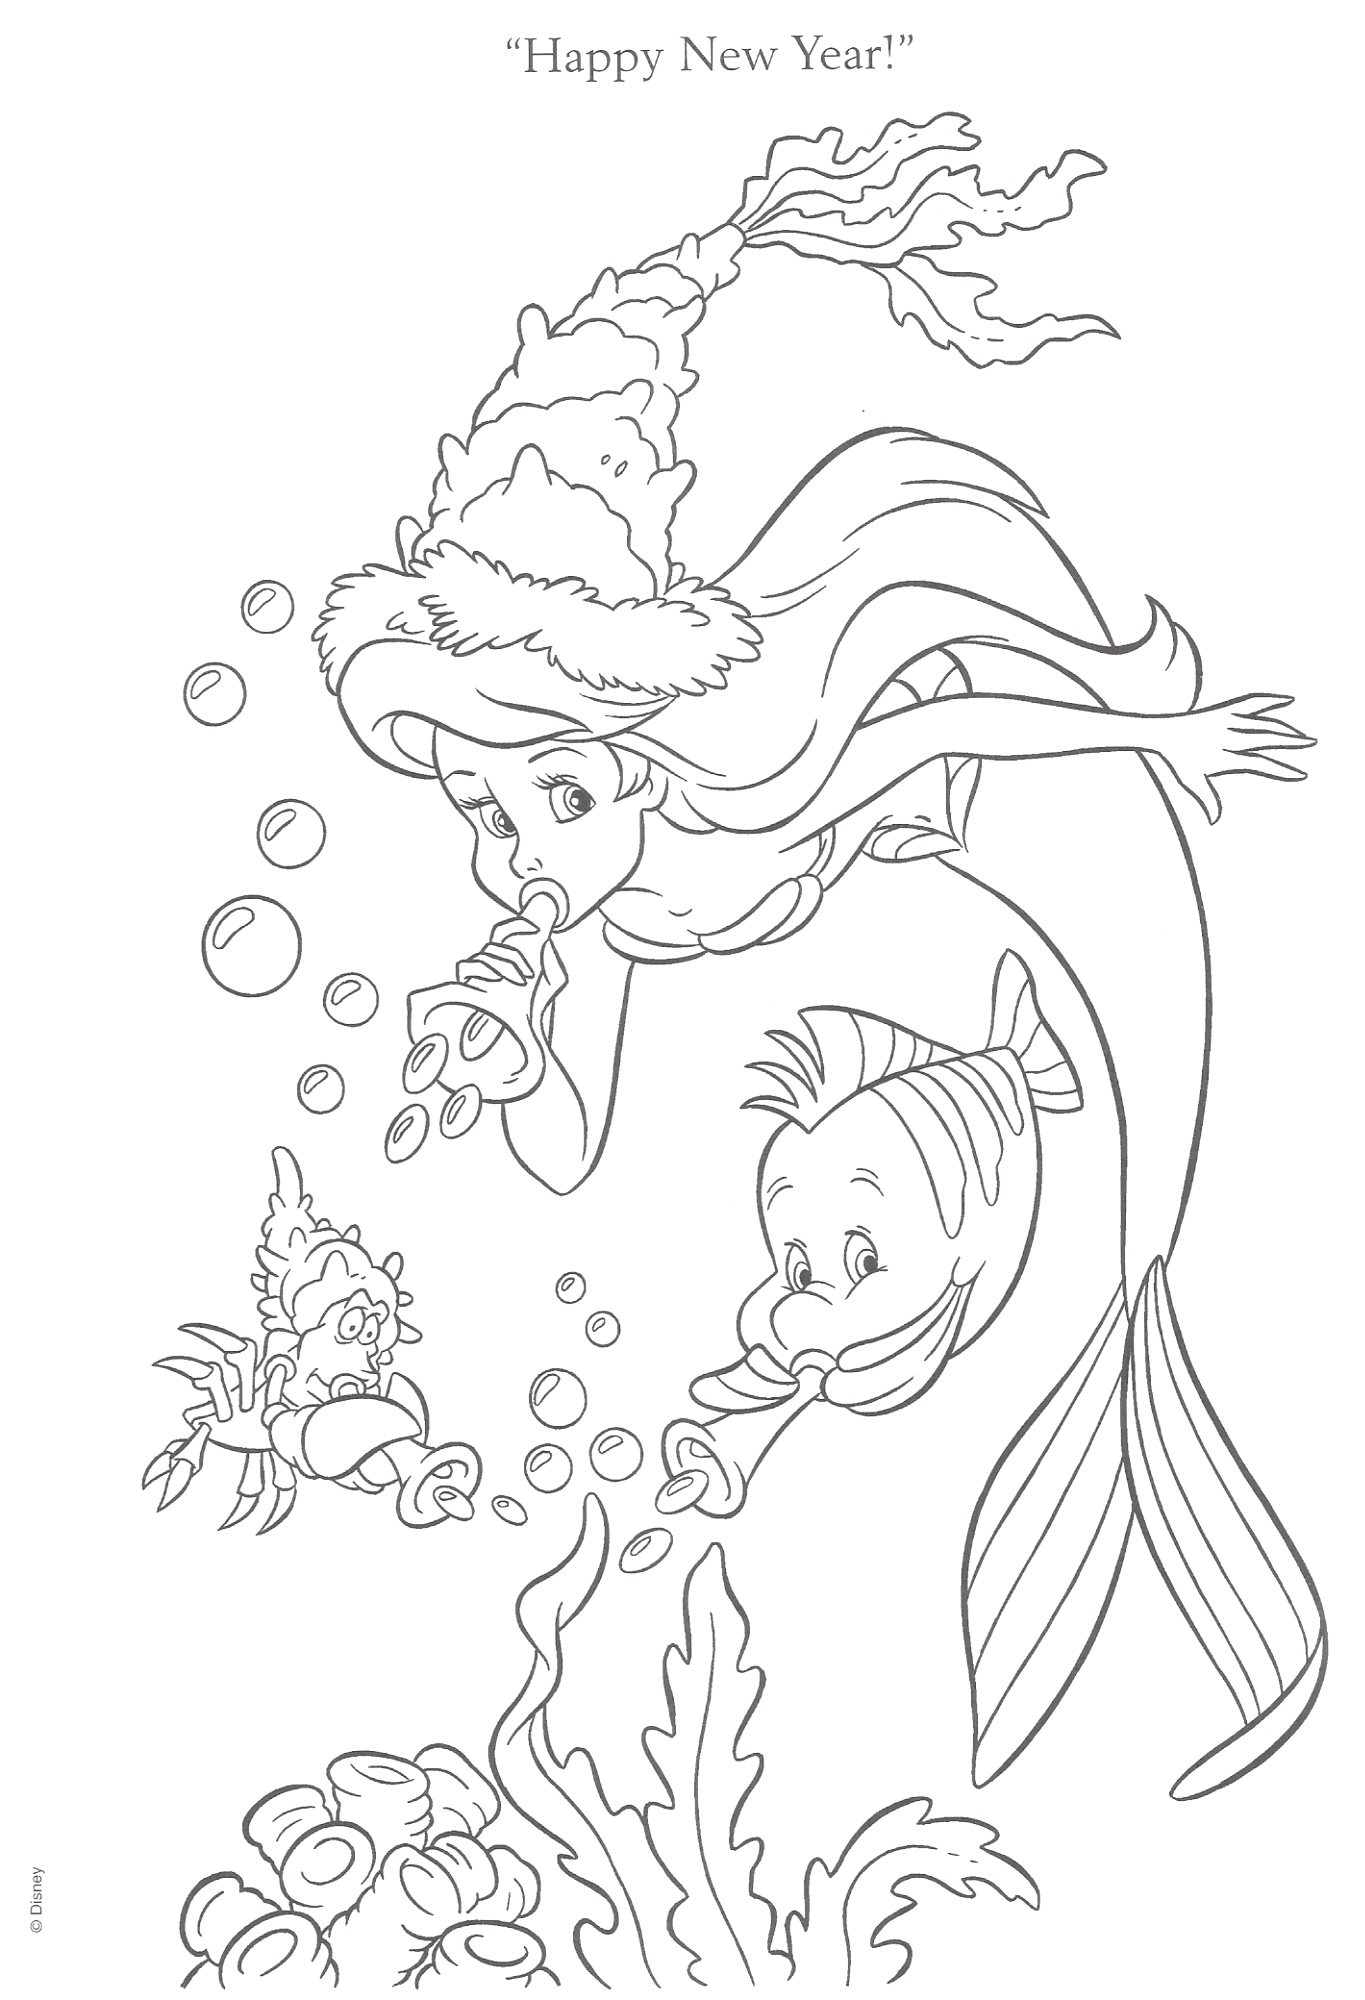 The Little Mermaid coloring pages | Print and Color.com | 2000x1365